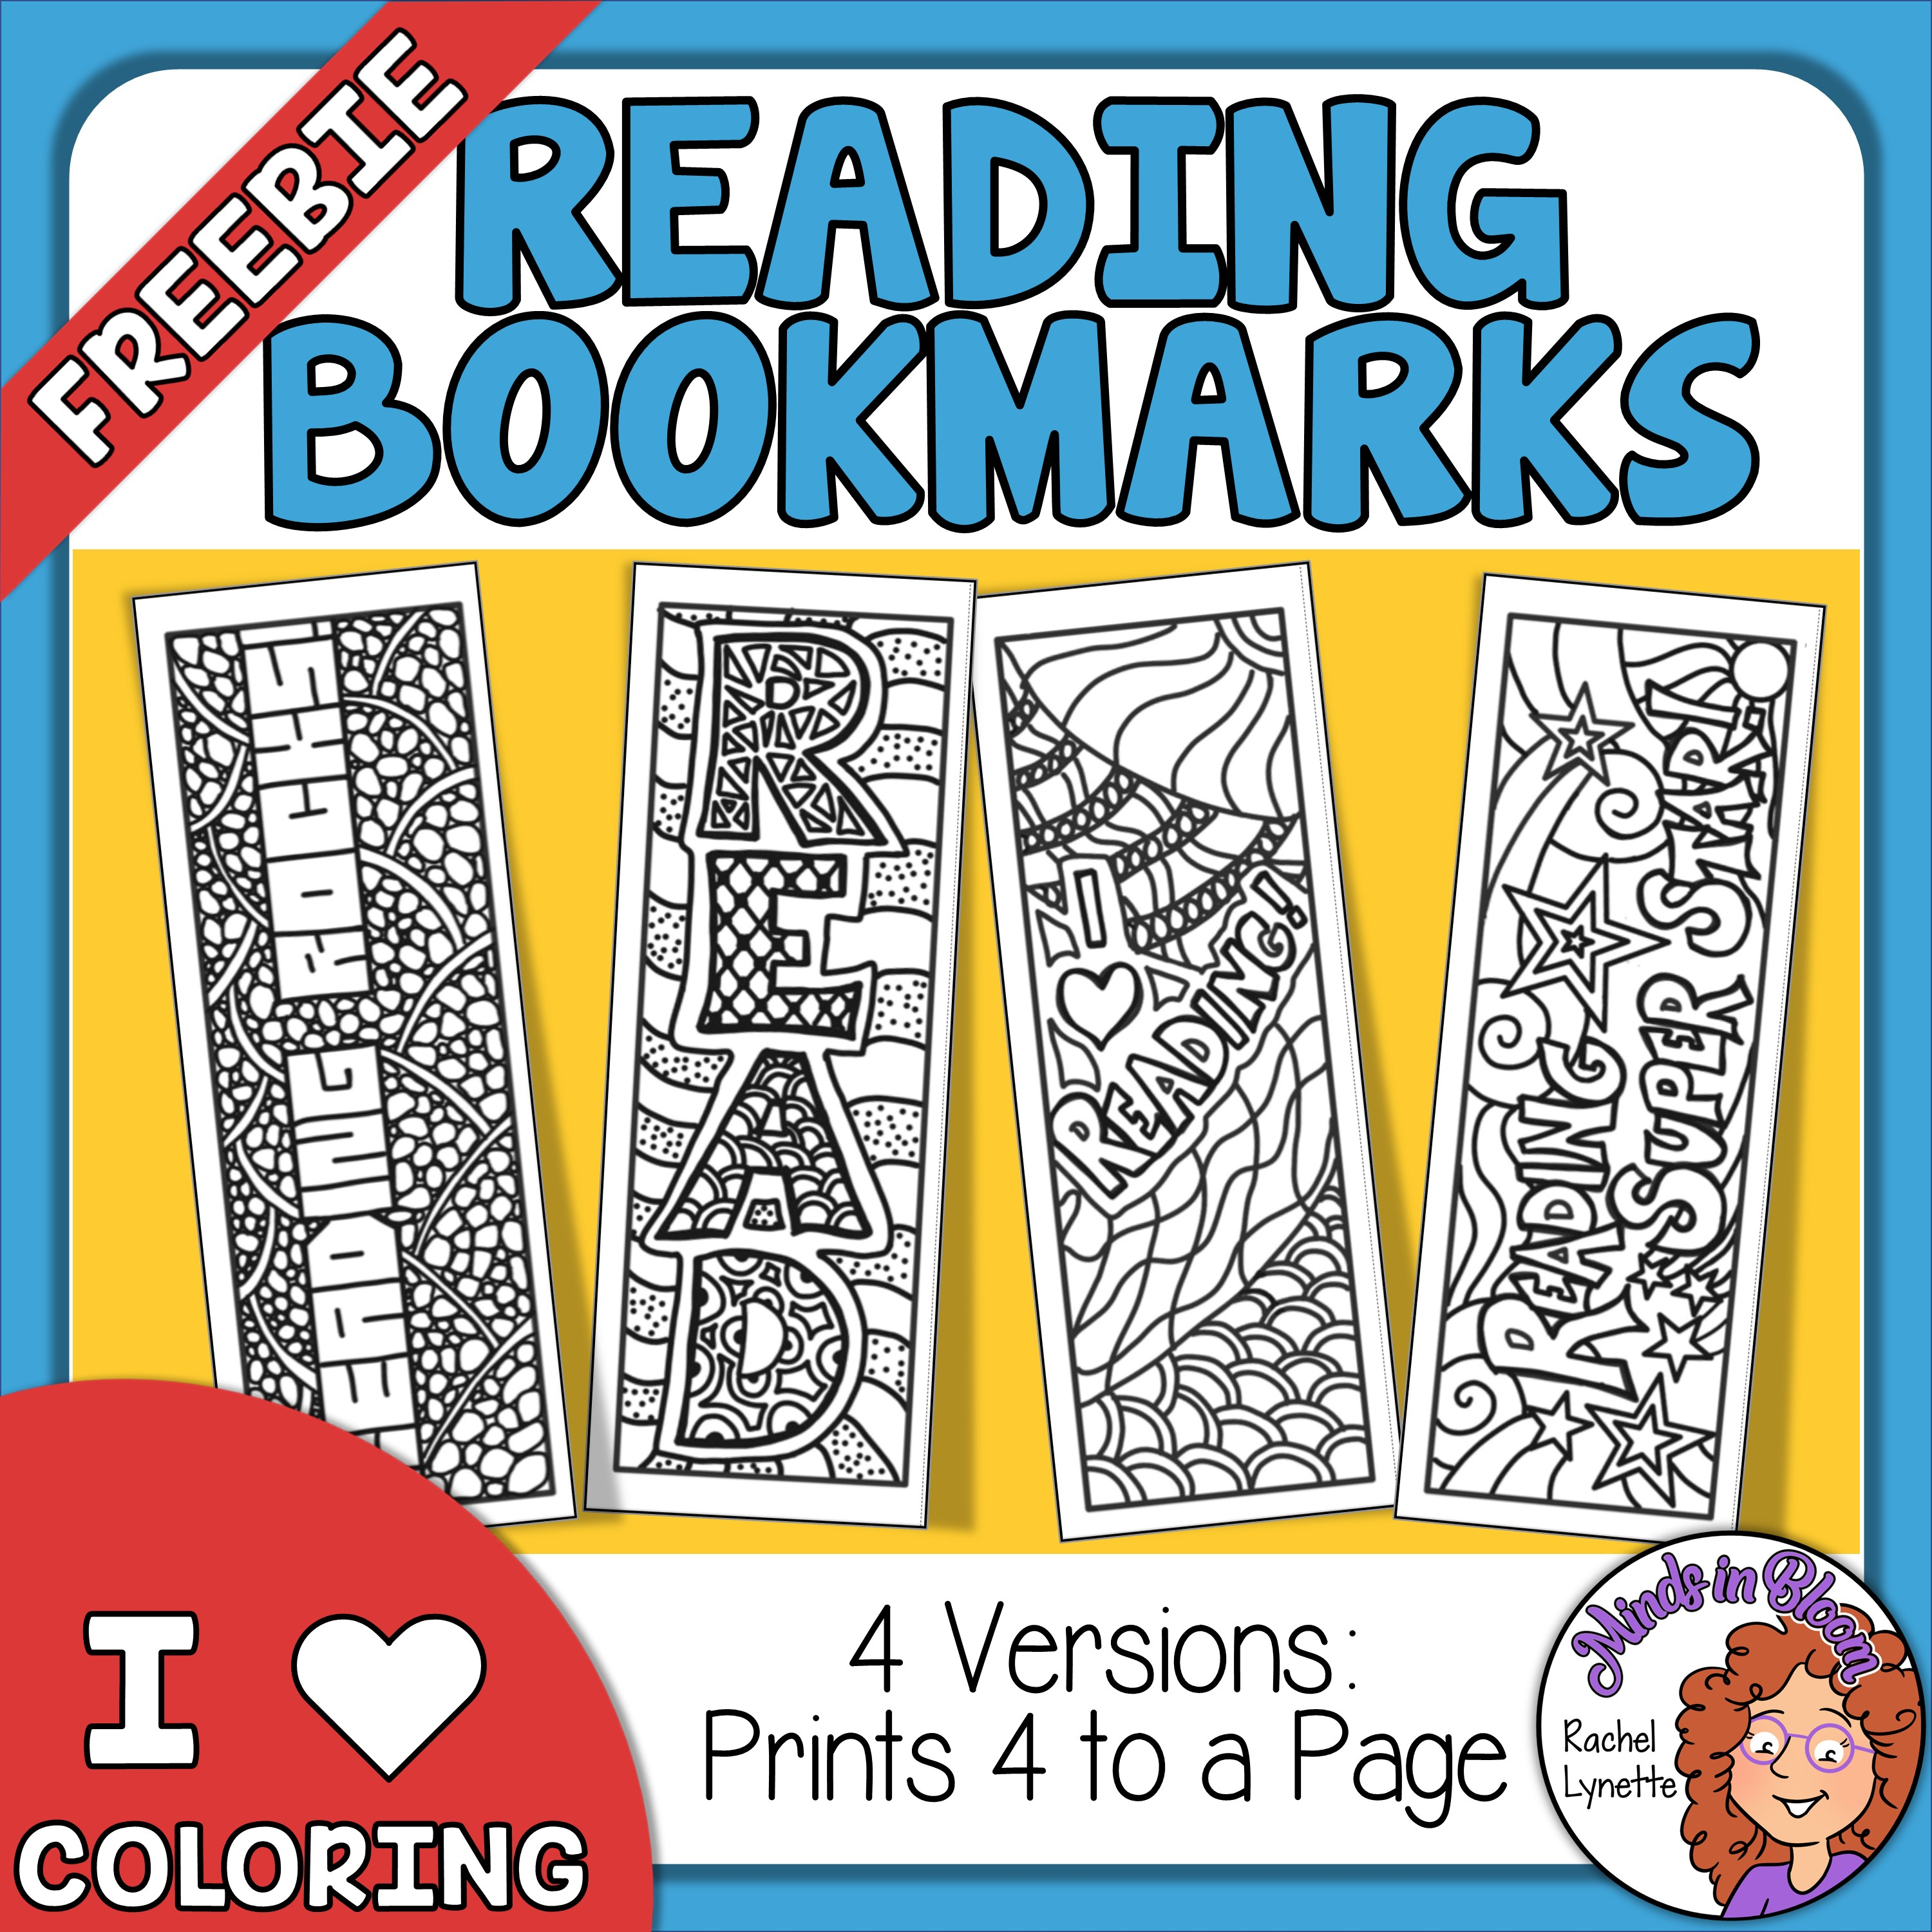 Reading Bookmarks to Color - Free! Image